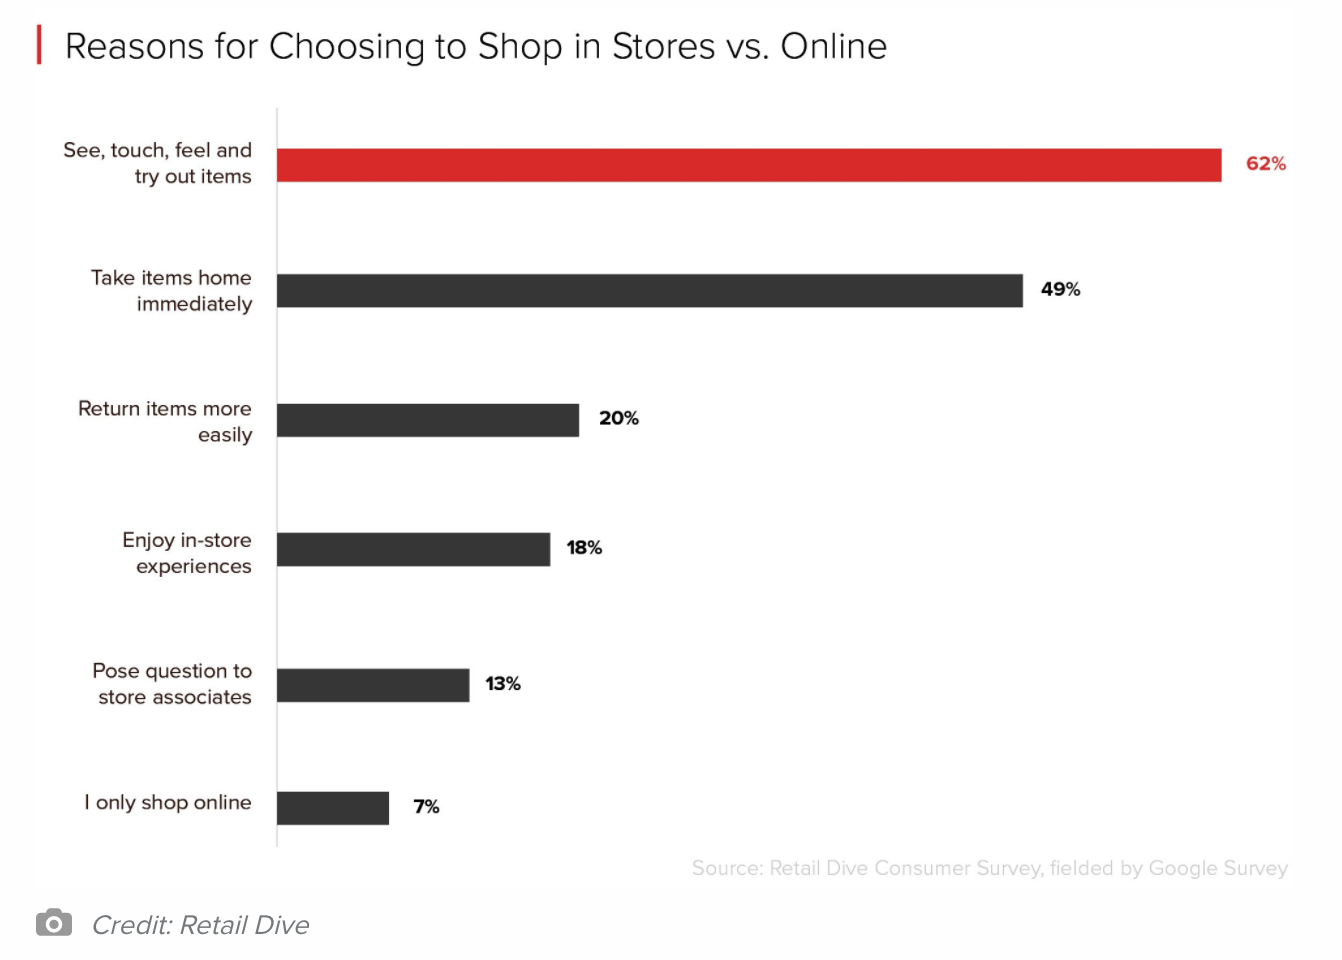 Reasons for choosing to shop in stores vs online-1.png